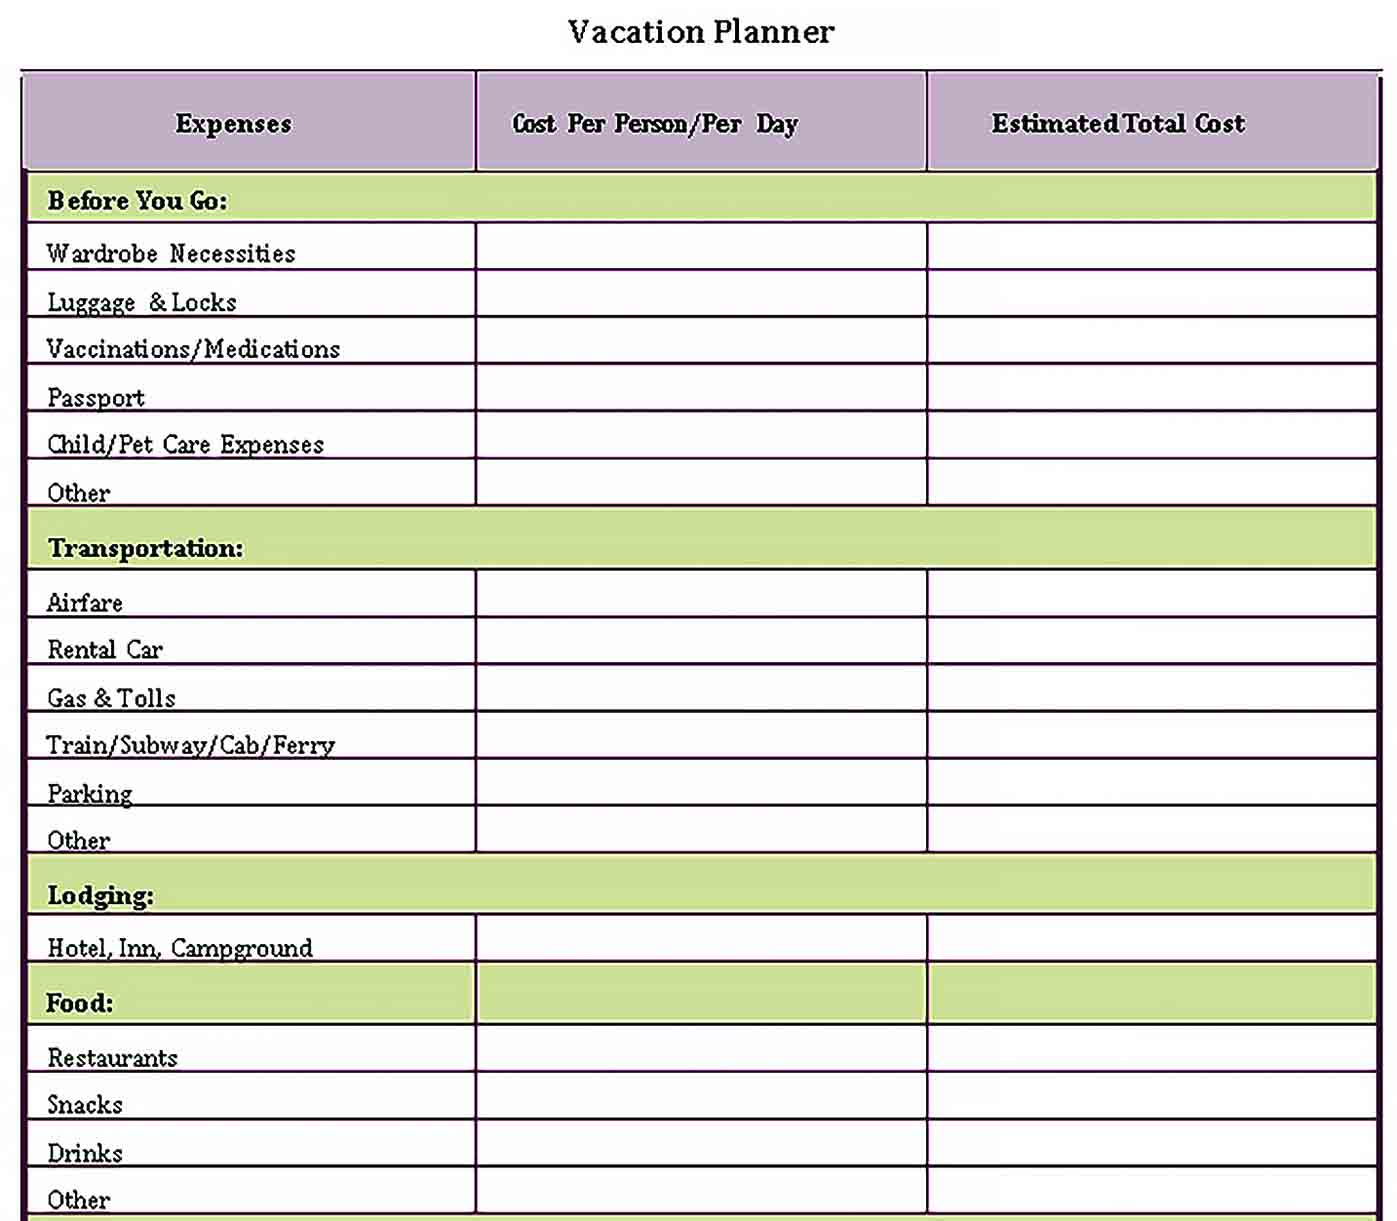 Template Vacation Planning Checklist